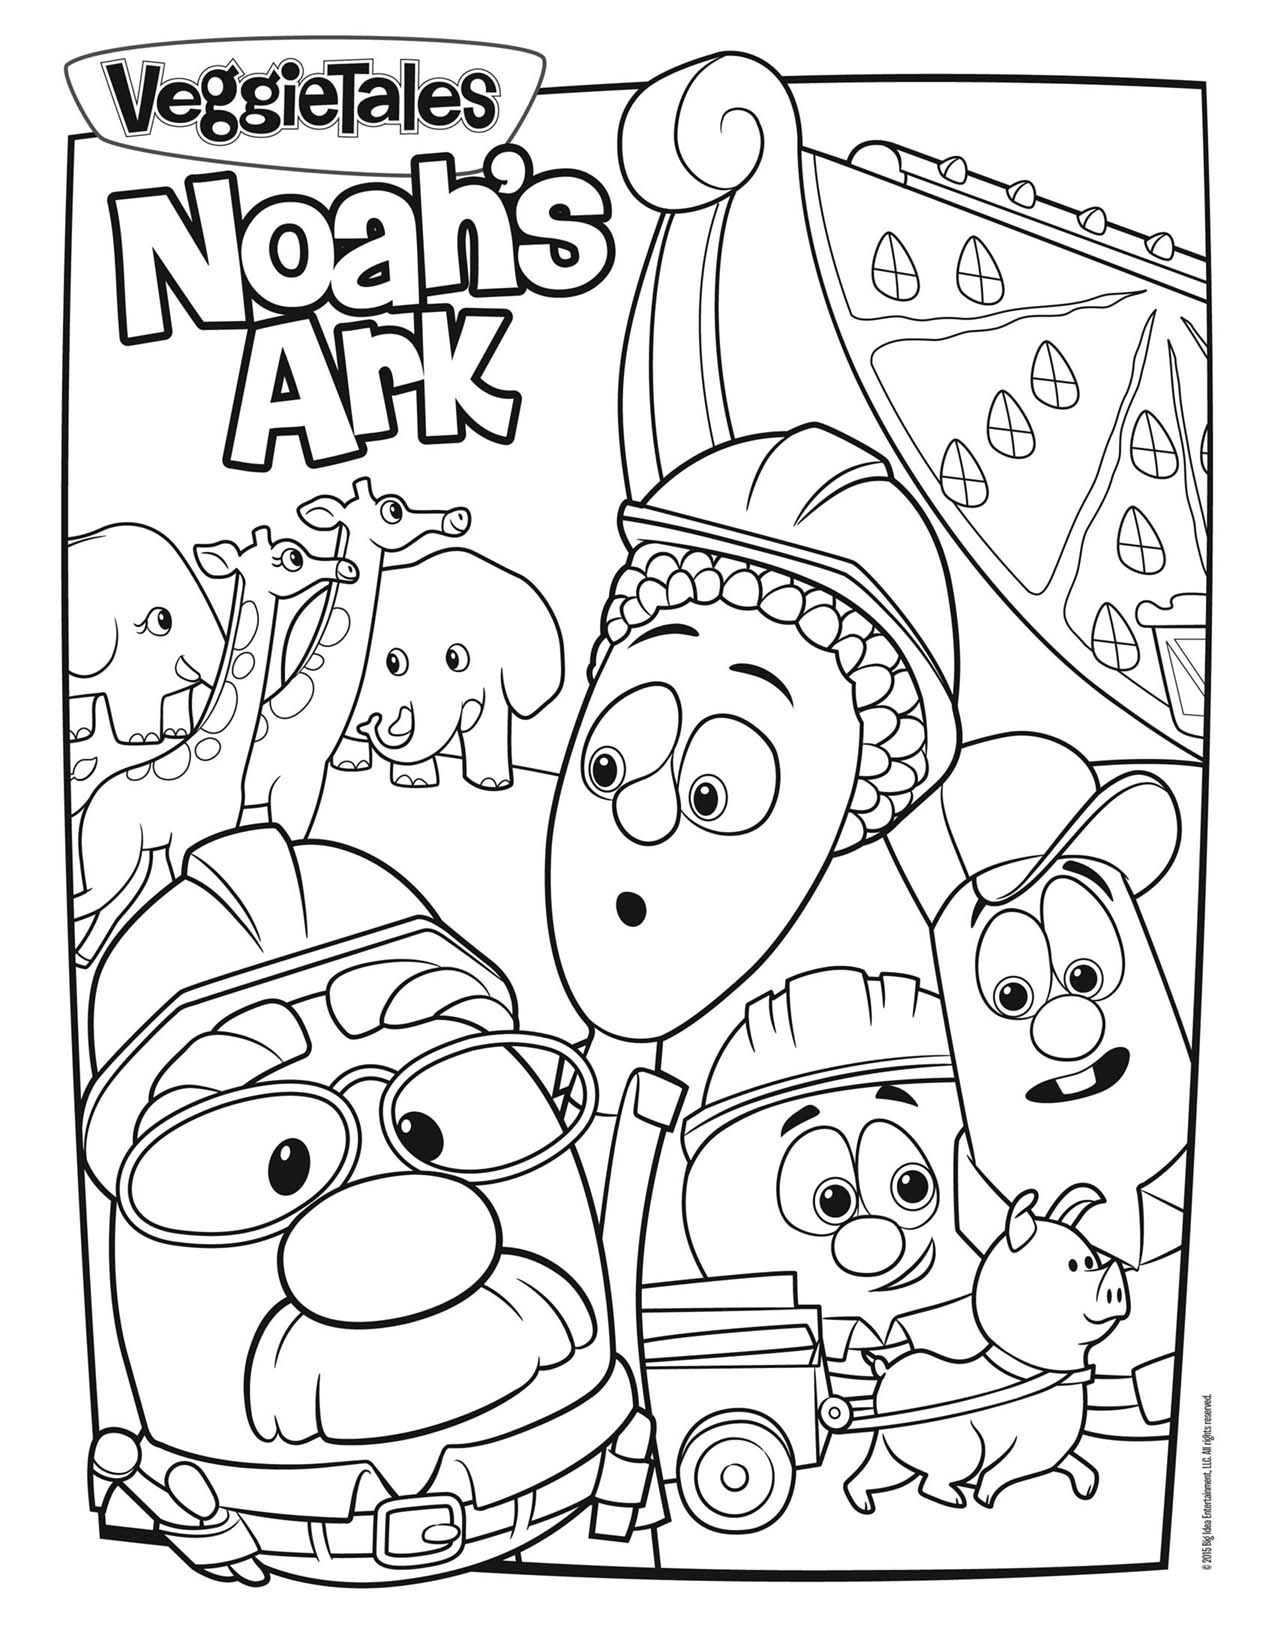 noah u0027s ark coloring page still love to color veggie tales